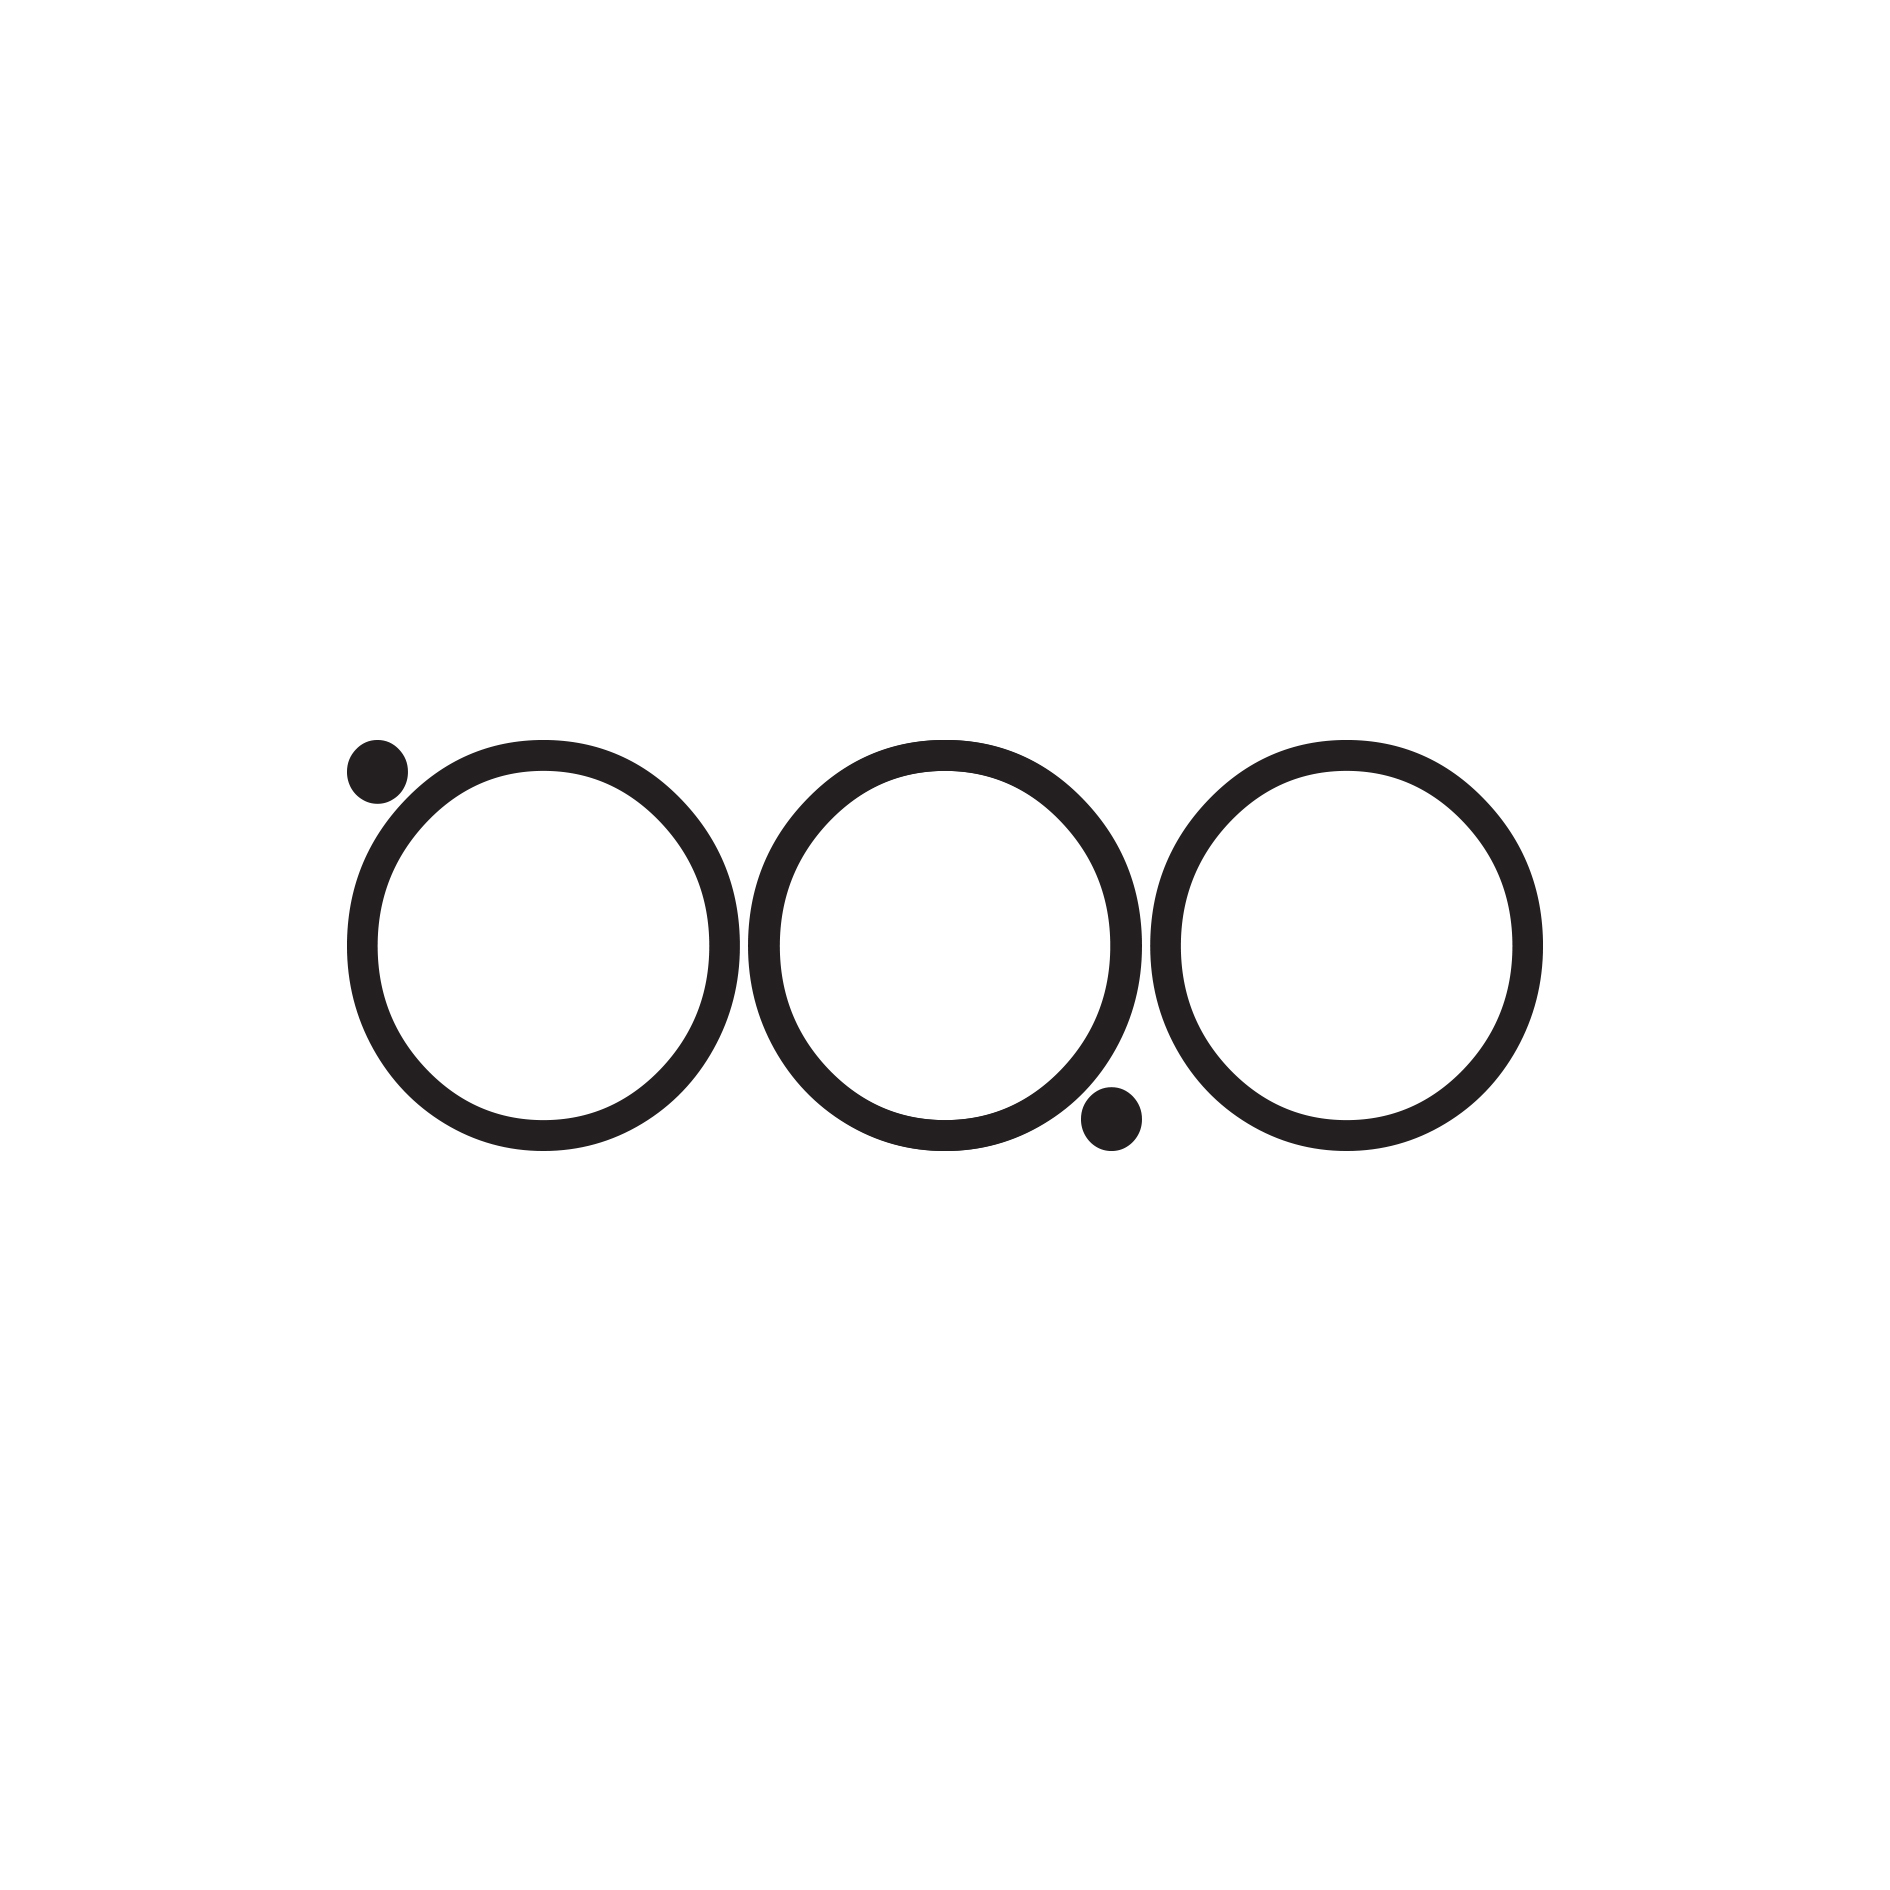 BAO SAGO Studio   BAO SAGO is a photography studio in Saigon, Vietnam. The studio focuses on photos, from portrait, product, fashion, or family, but also creates video clips showing in wedding ceremony.